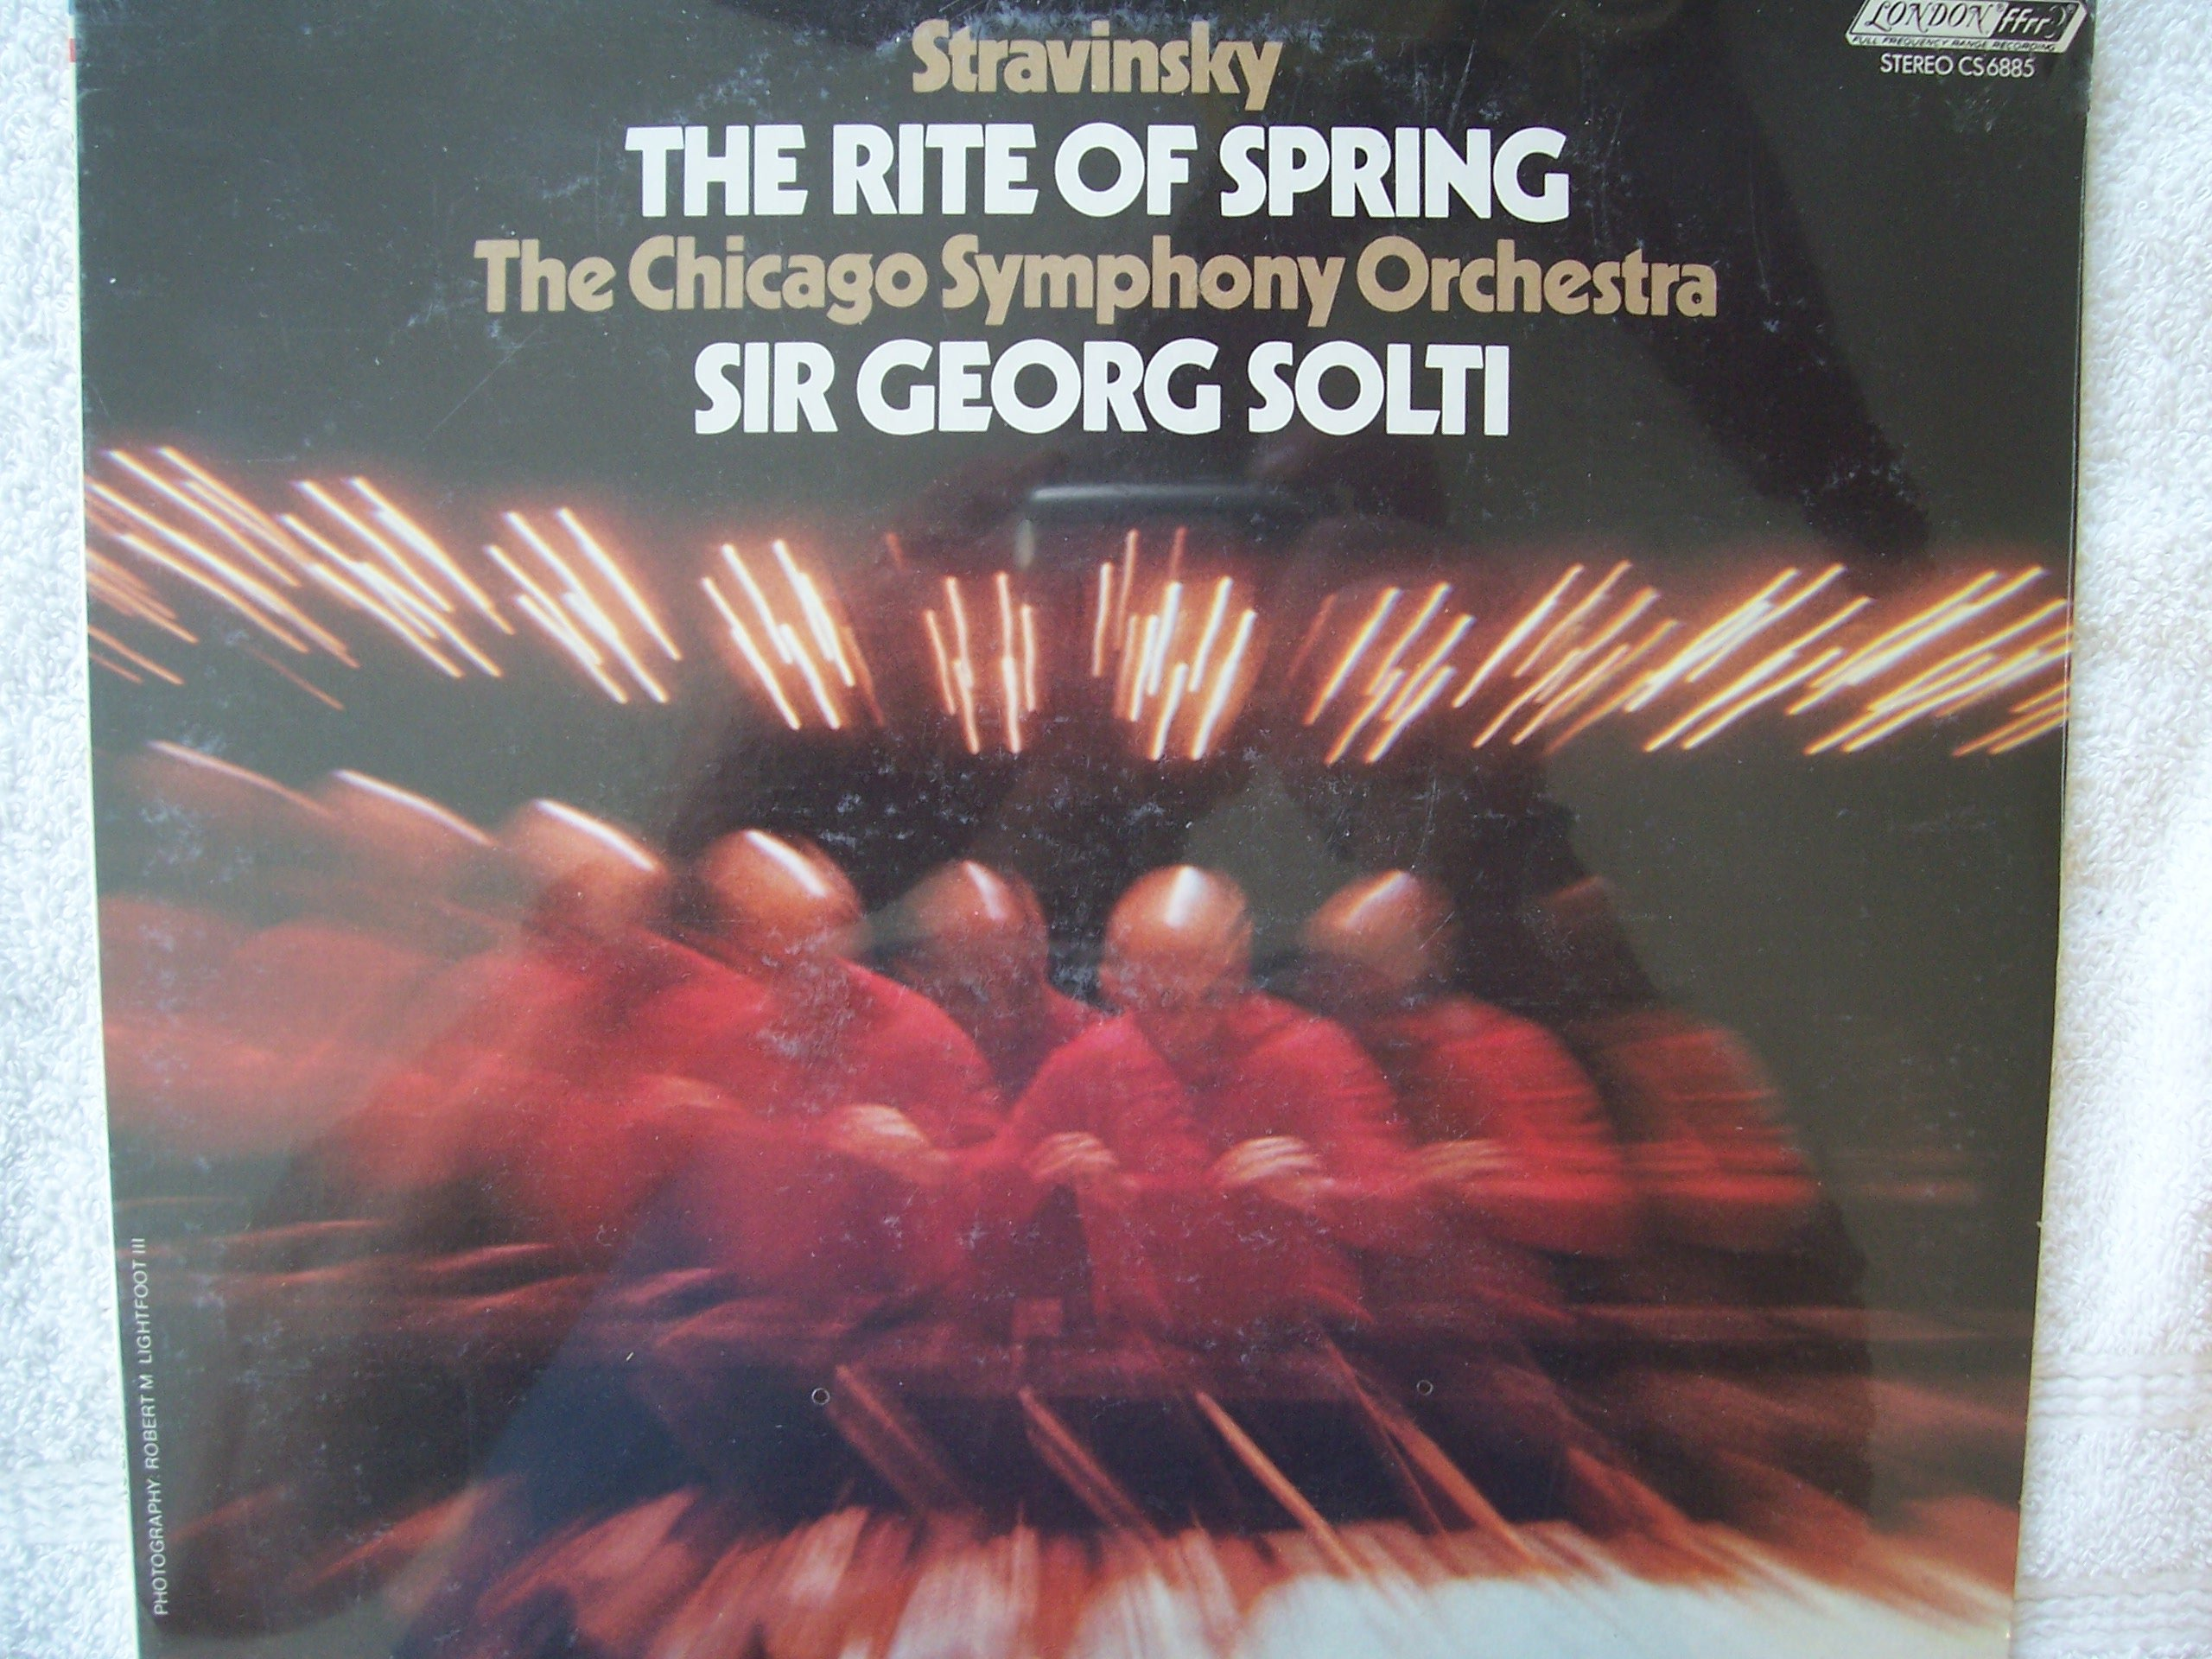 Stravinsky The Rite of Spring, The Chicago Symphony Orchestra sir Georg Solti LP vinyl dated 1974 by London ffrr (ENGLAND)